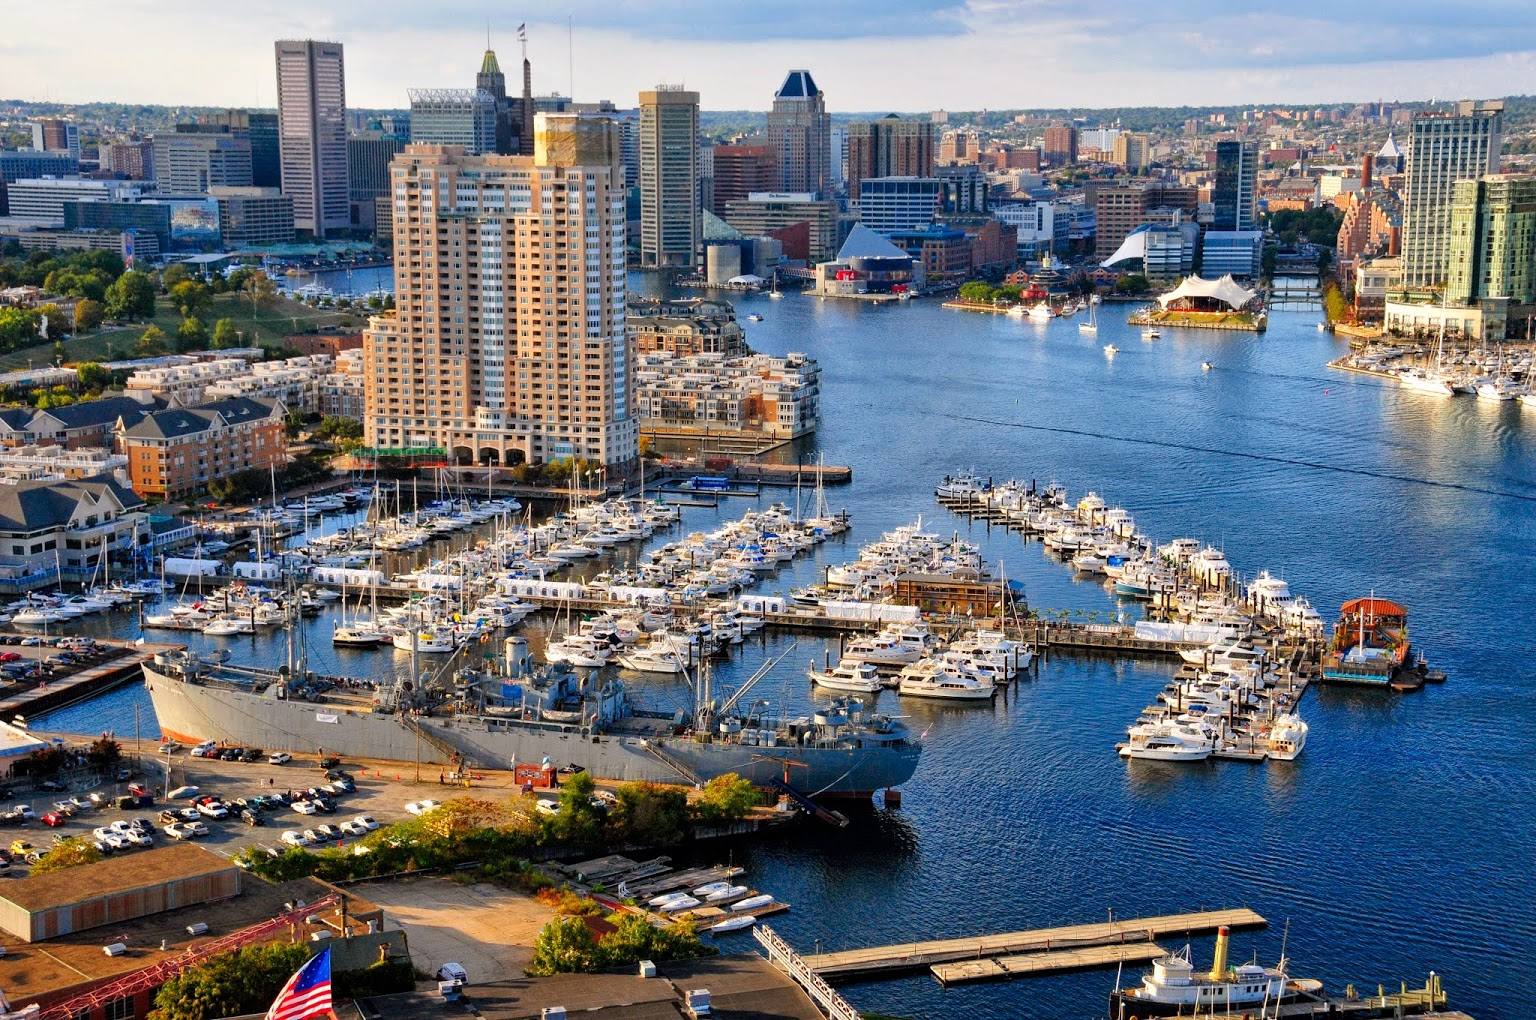 Baltimore Marine Centers at HarborView Marina in Baltimore, MD